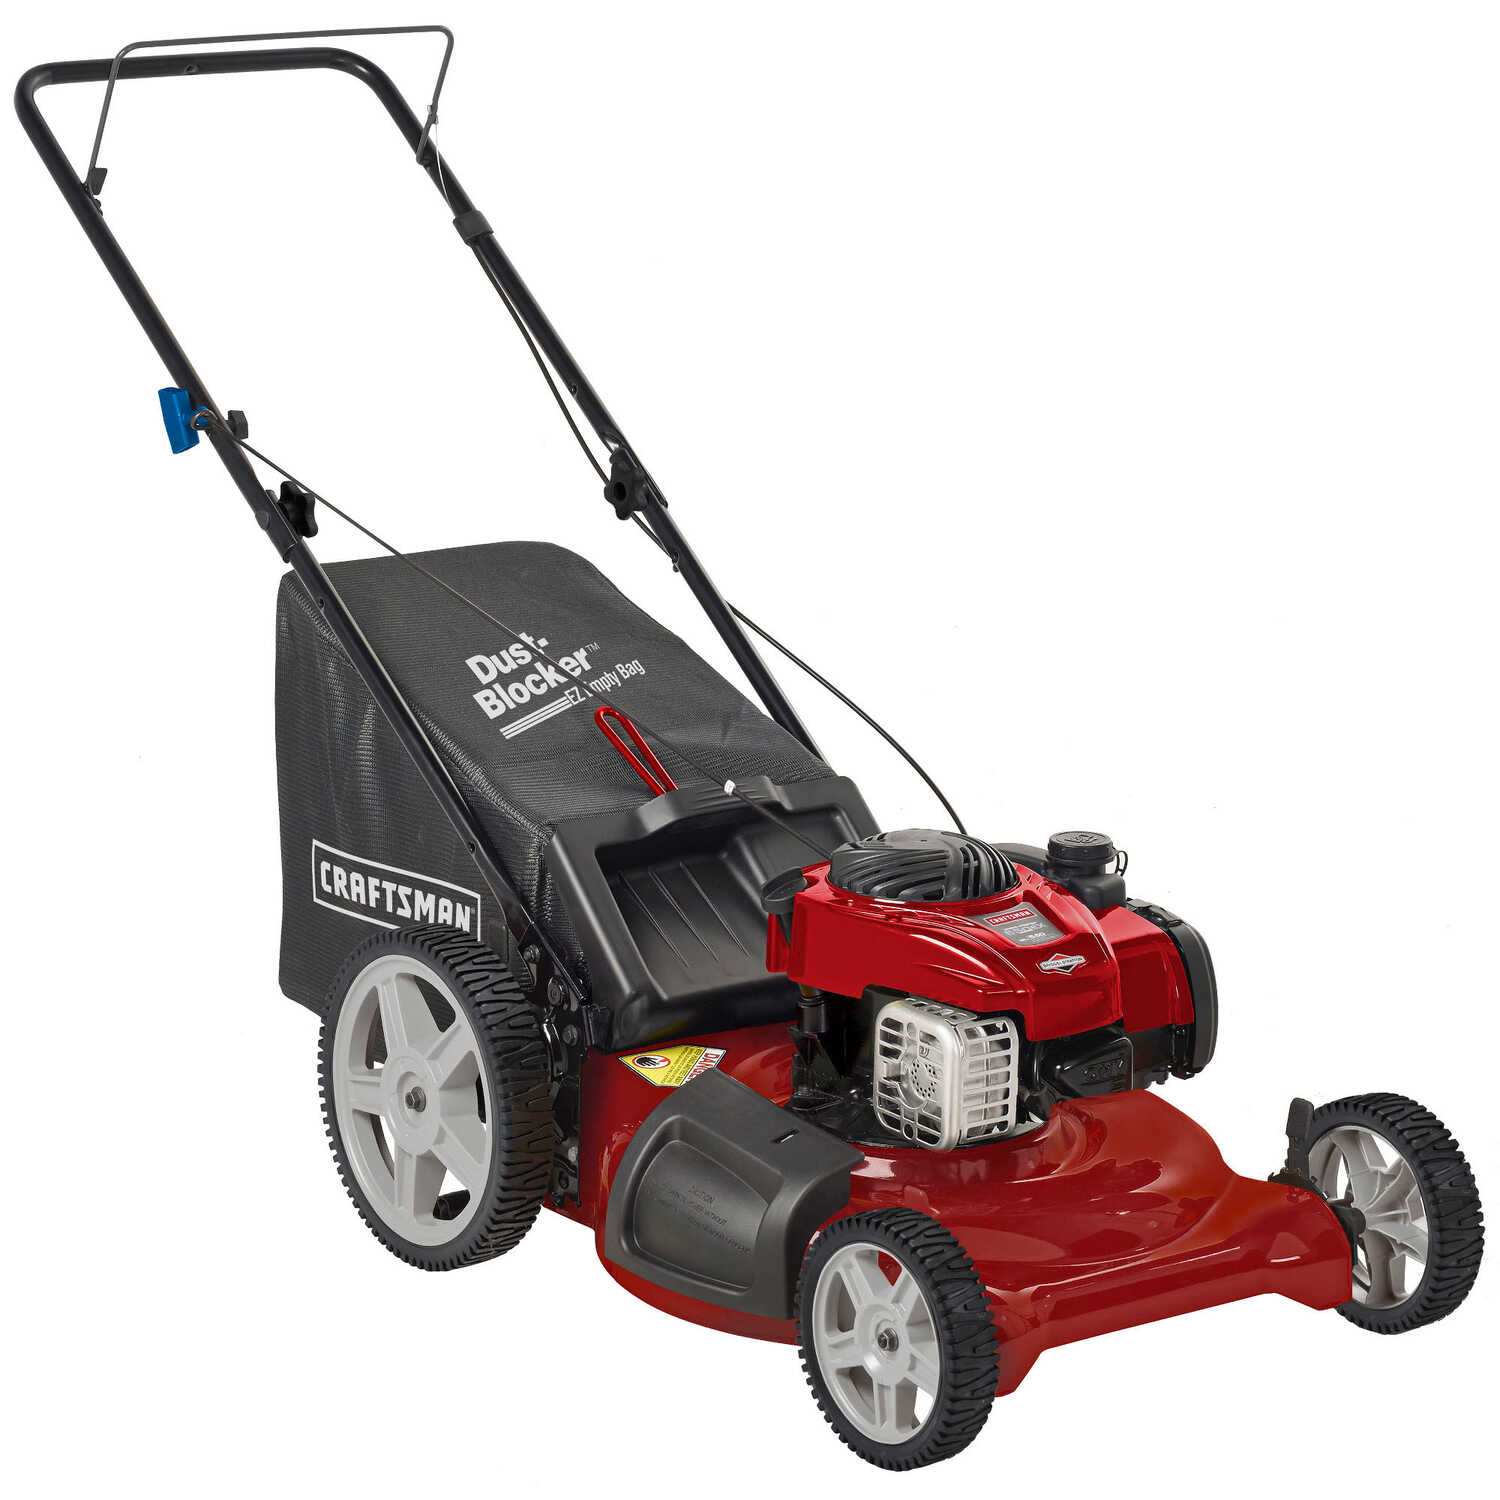 Craftsman  140 cc Manual-Push  Lawn Mower